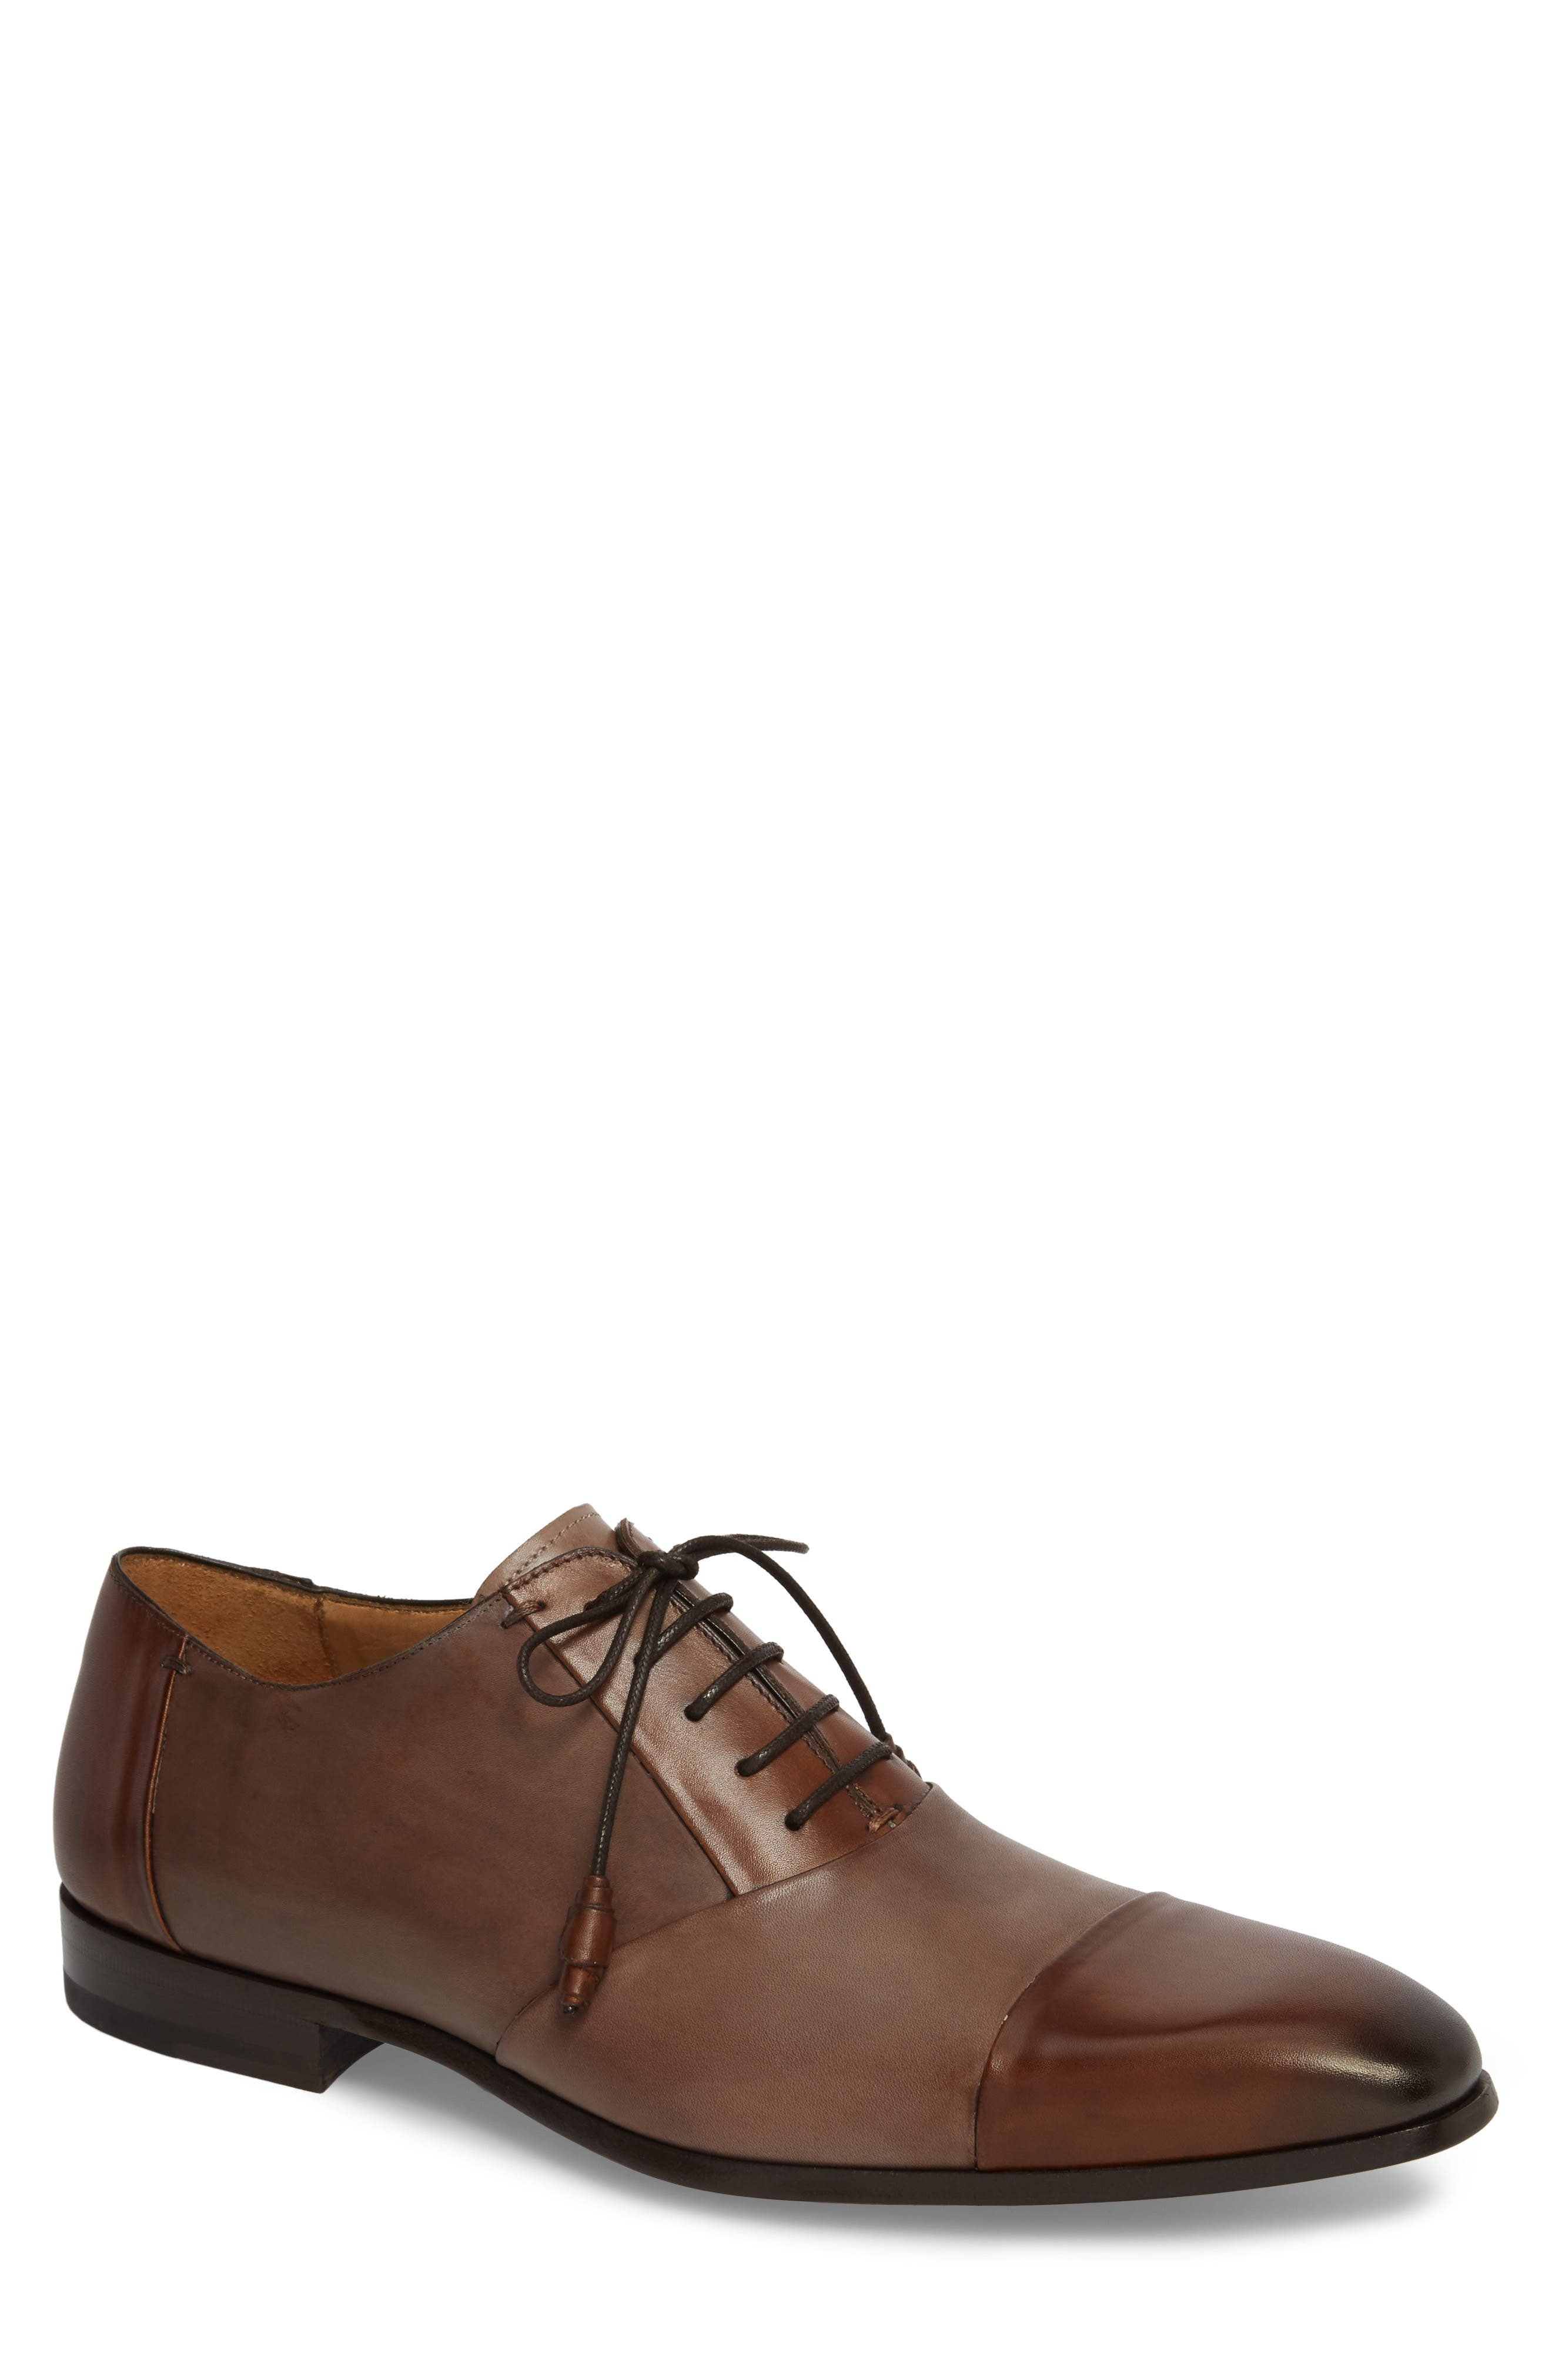 Mezlan Men's Julius Spectator Oxford diaBgHxX6g